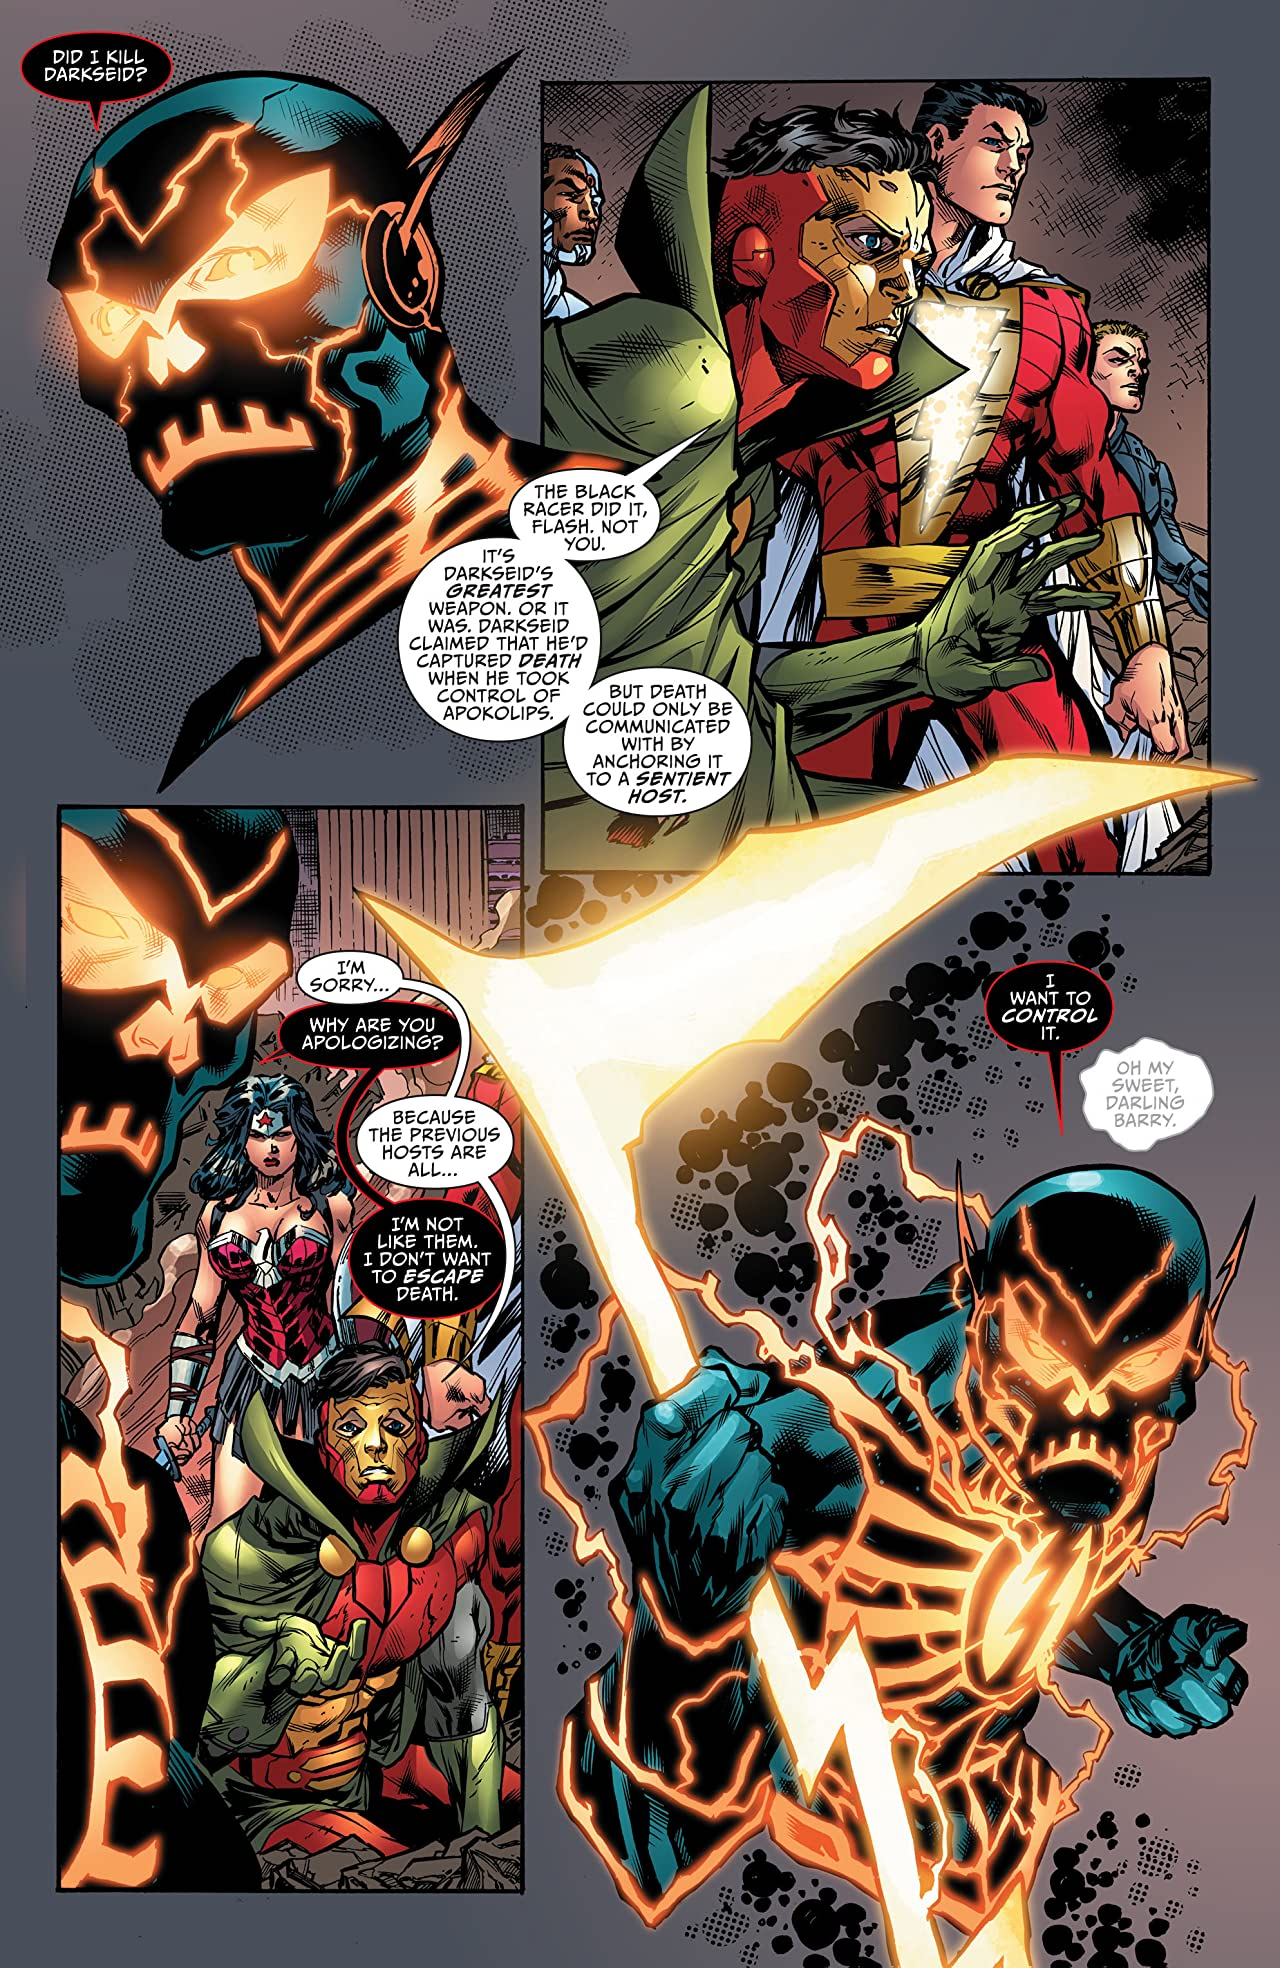 Justice League: The Darkseid War: The Flash (2015) #1